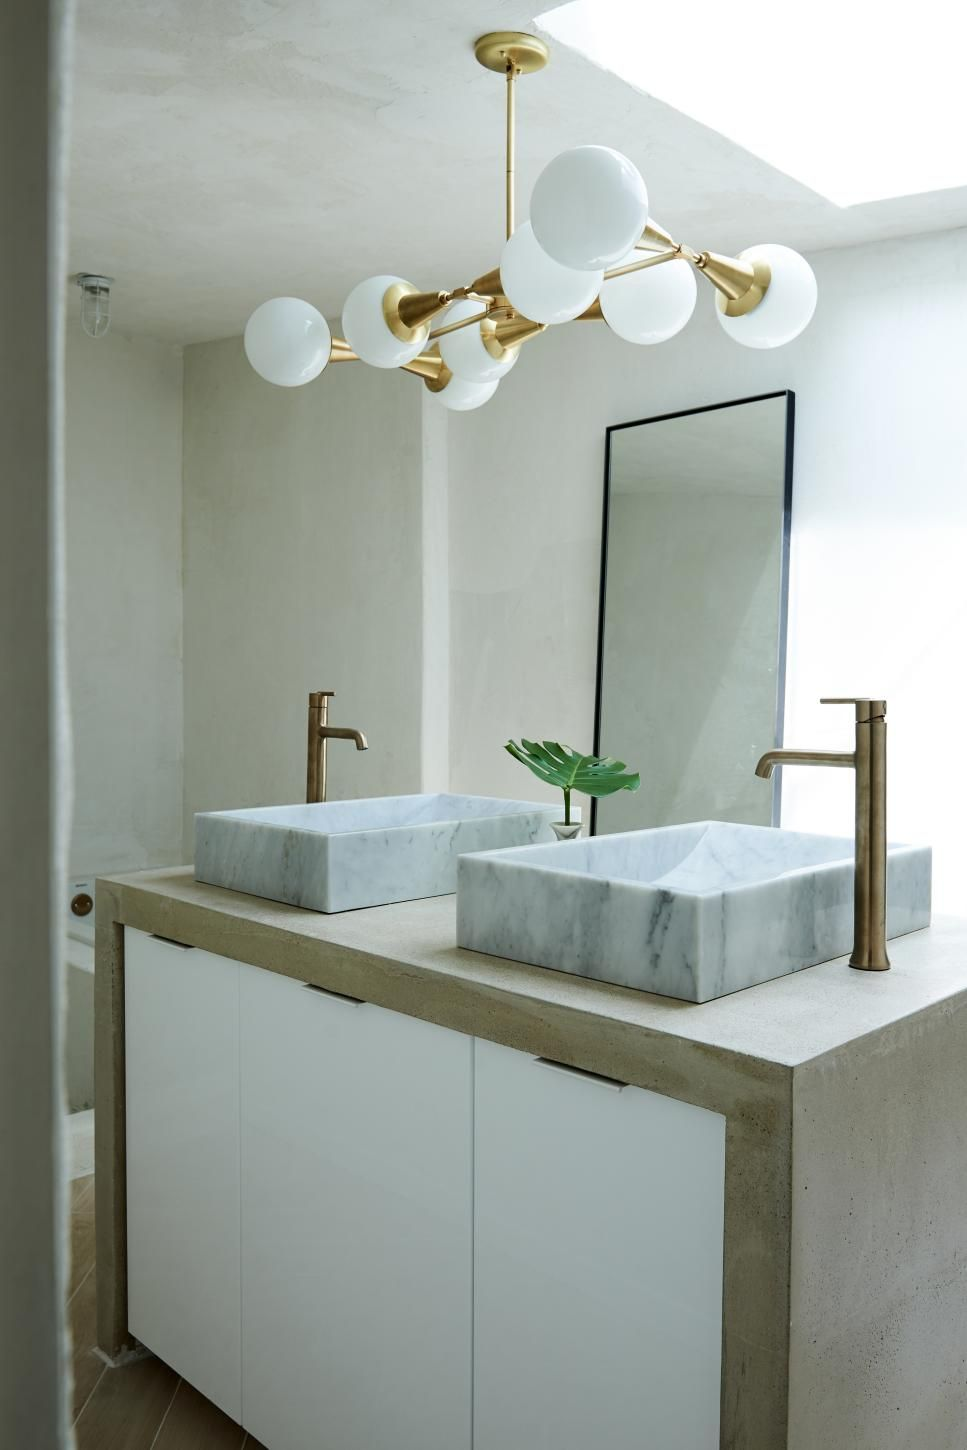 40 Bathroom Vanities You Ll Love For Every Style Hgtv In 2020